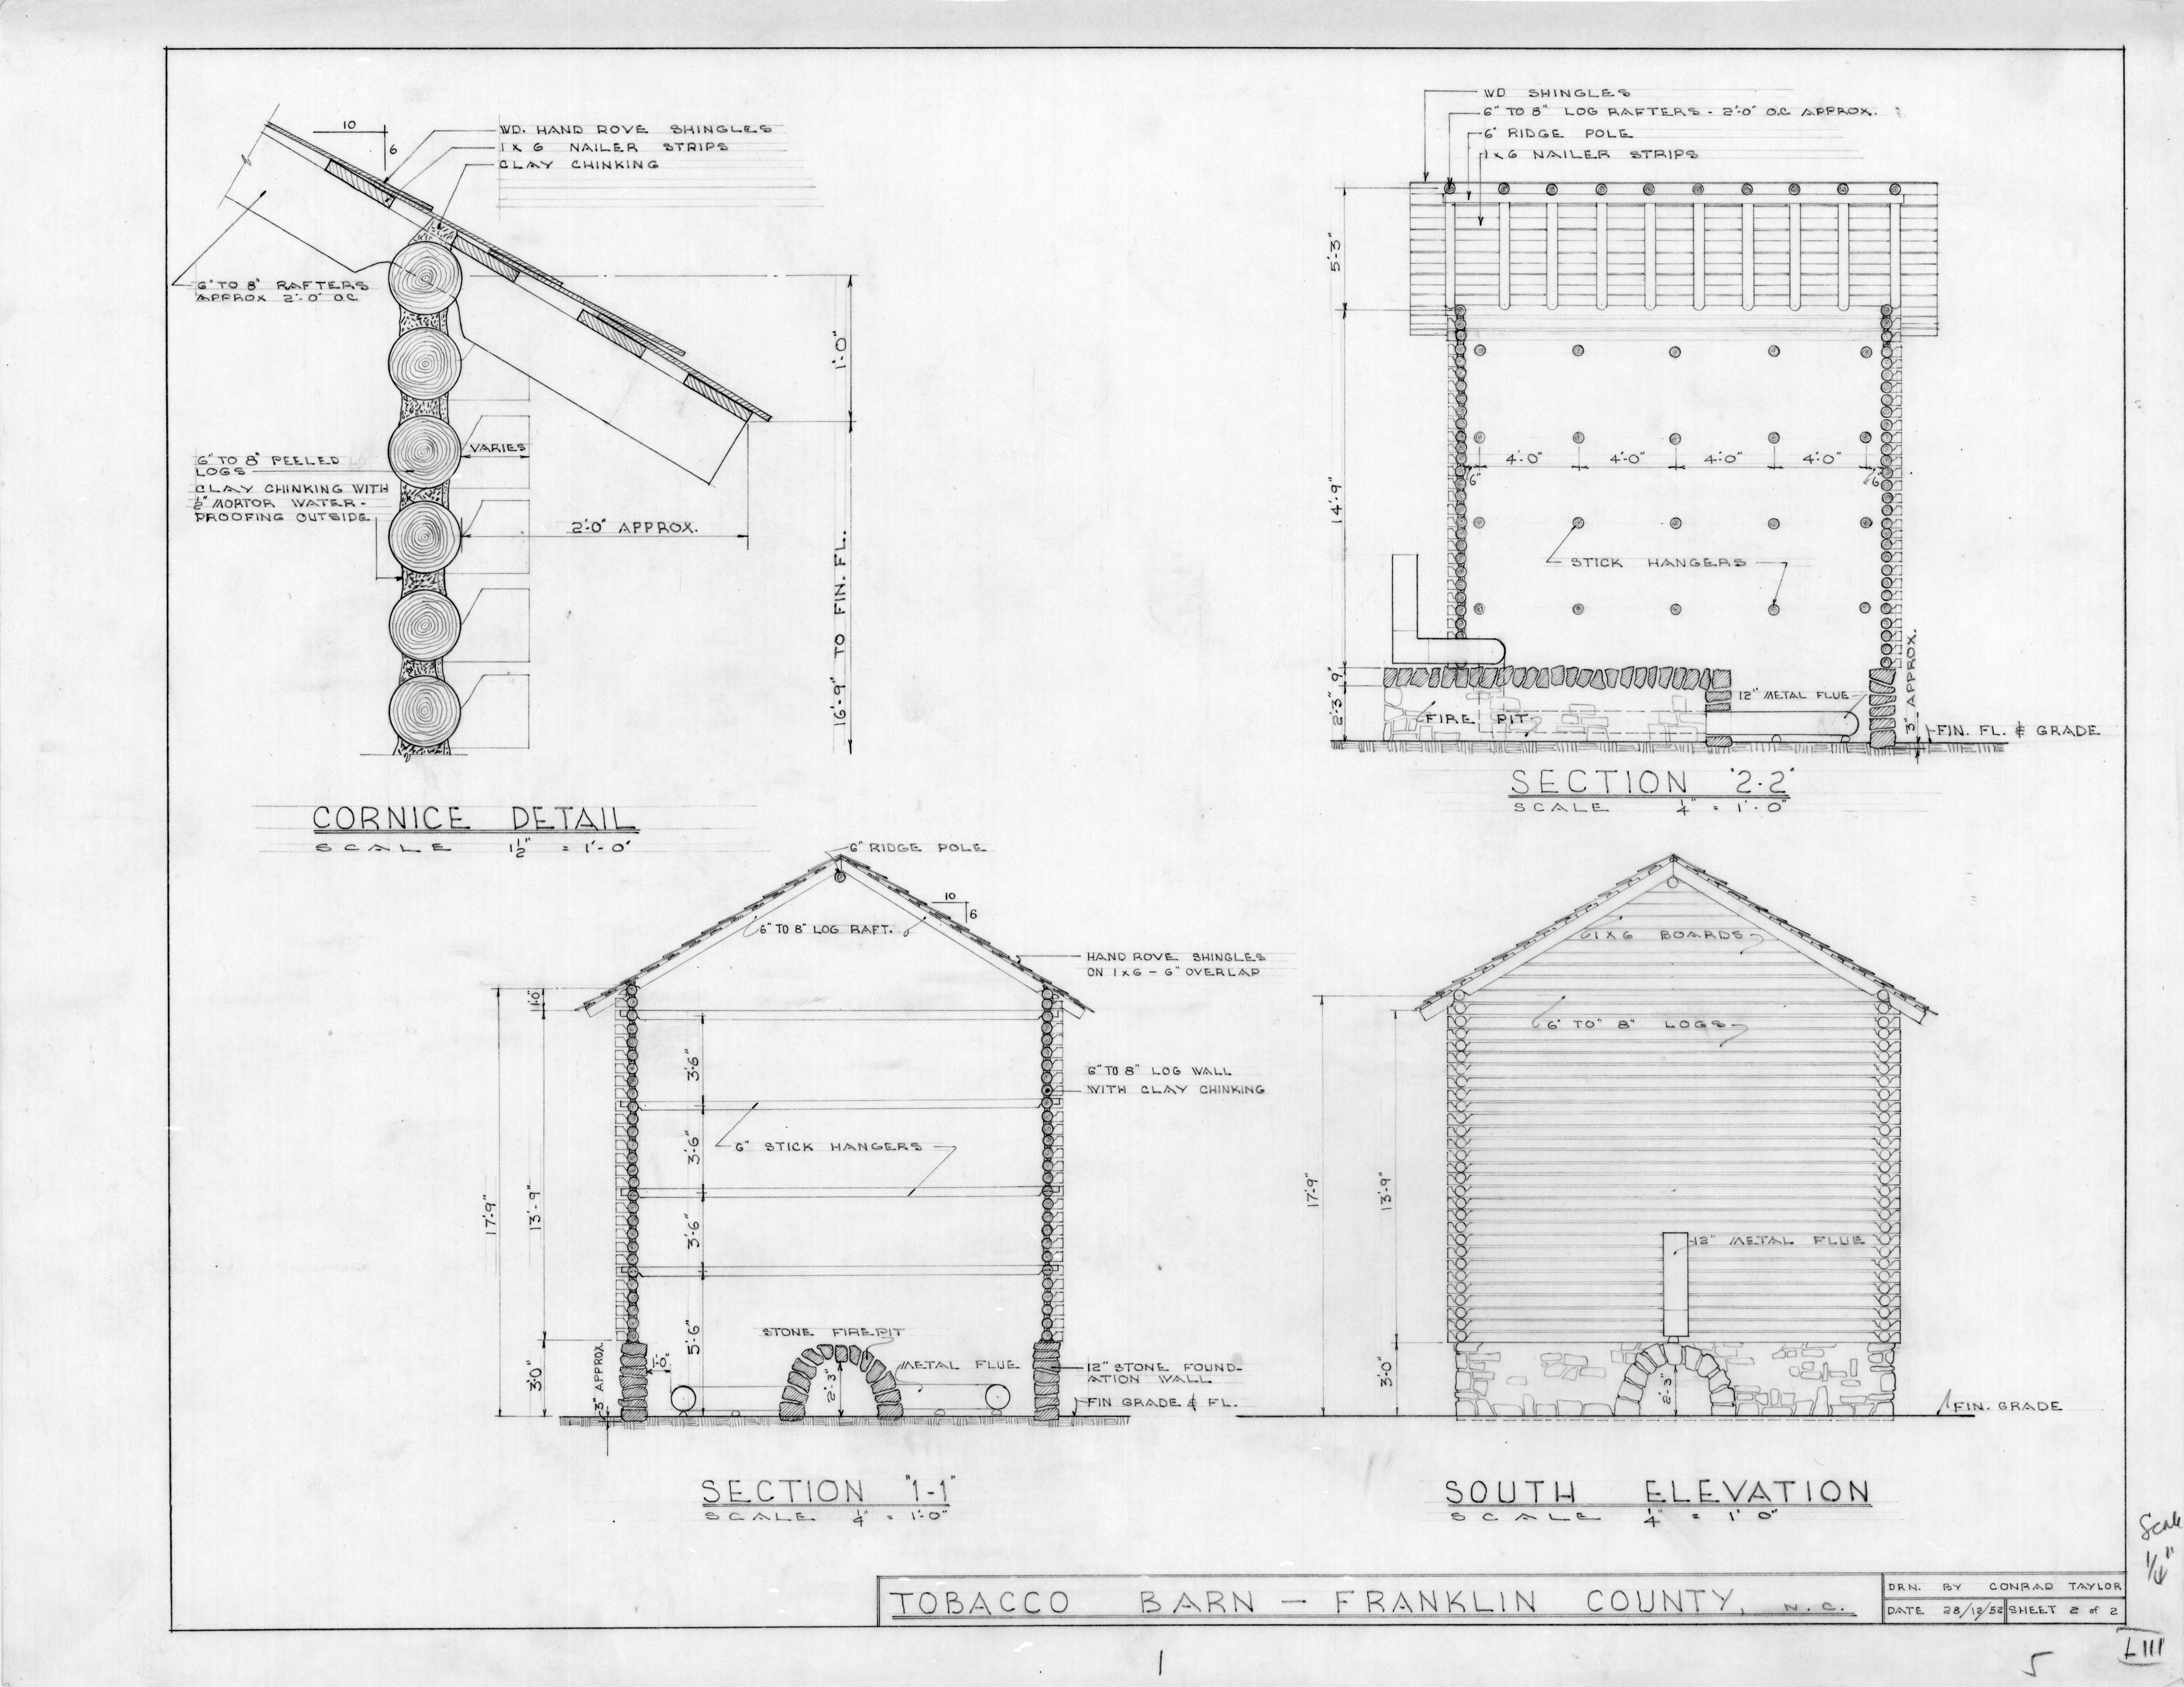 Sections cornice detail and south elevation tobacco for Tobacco barn house plans